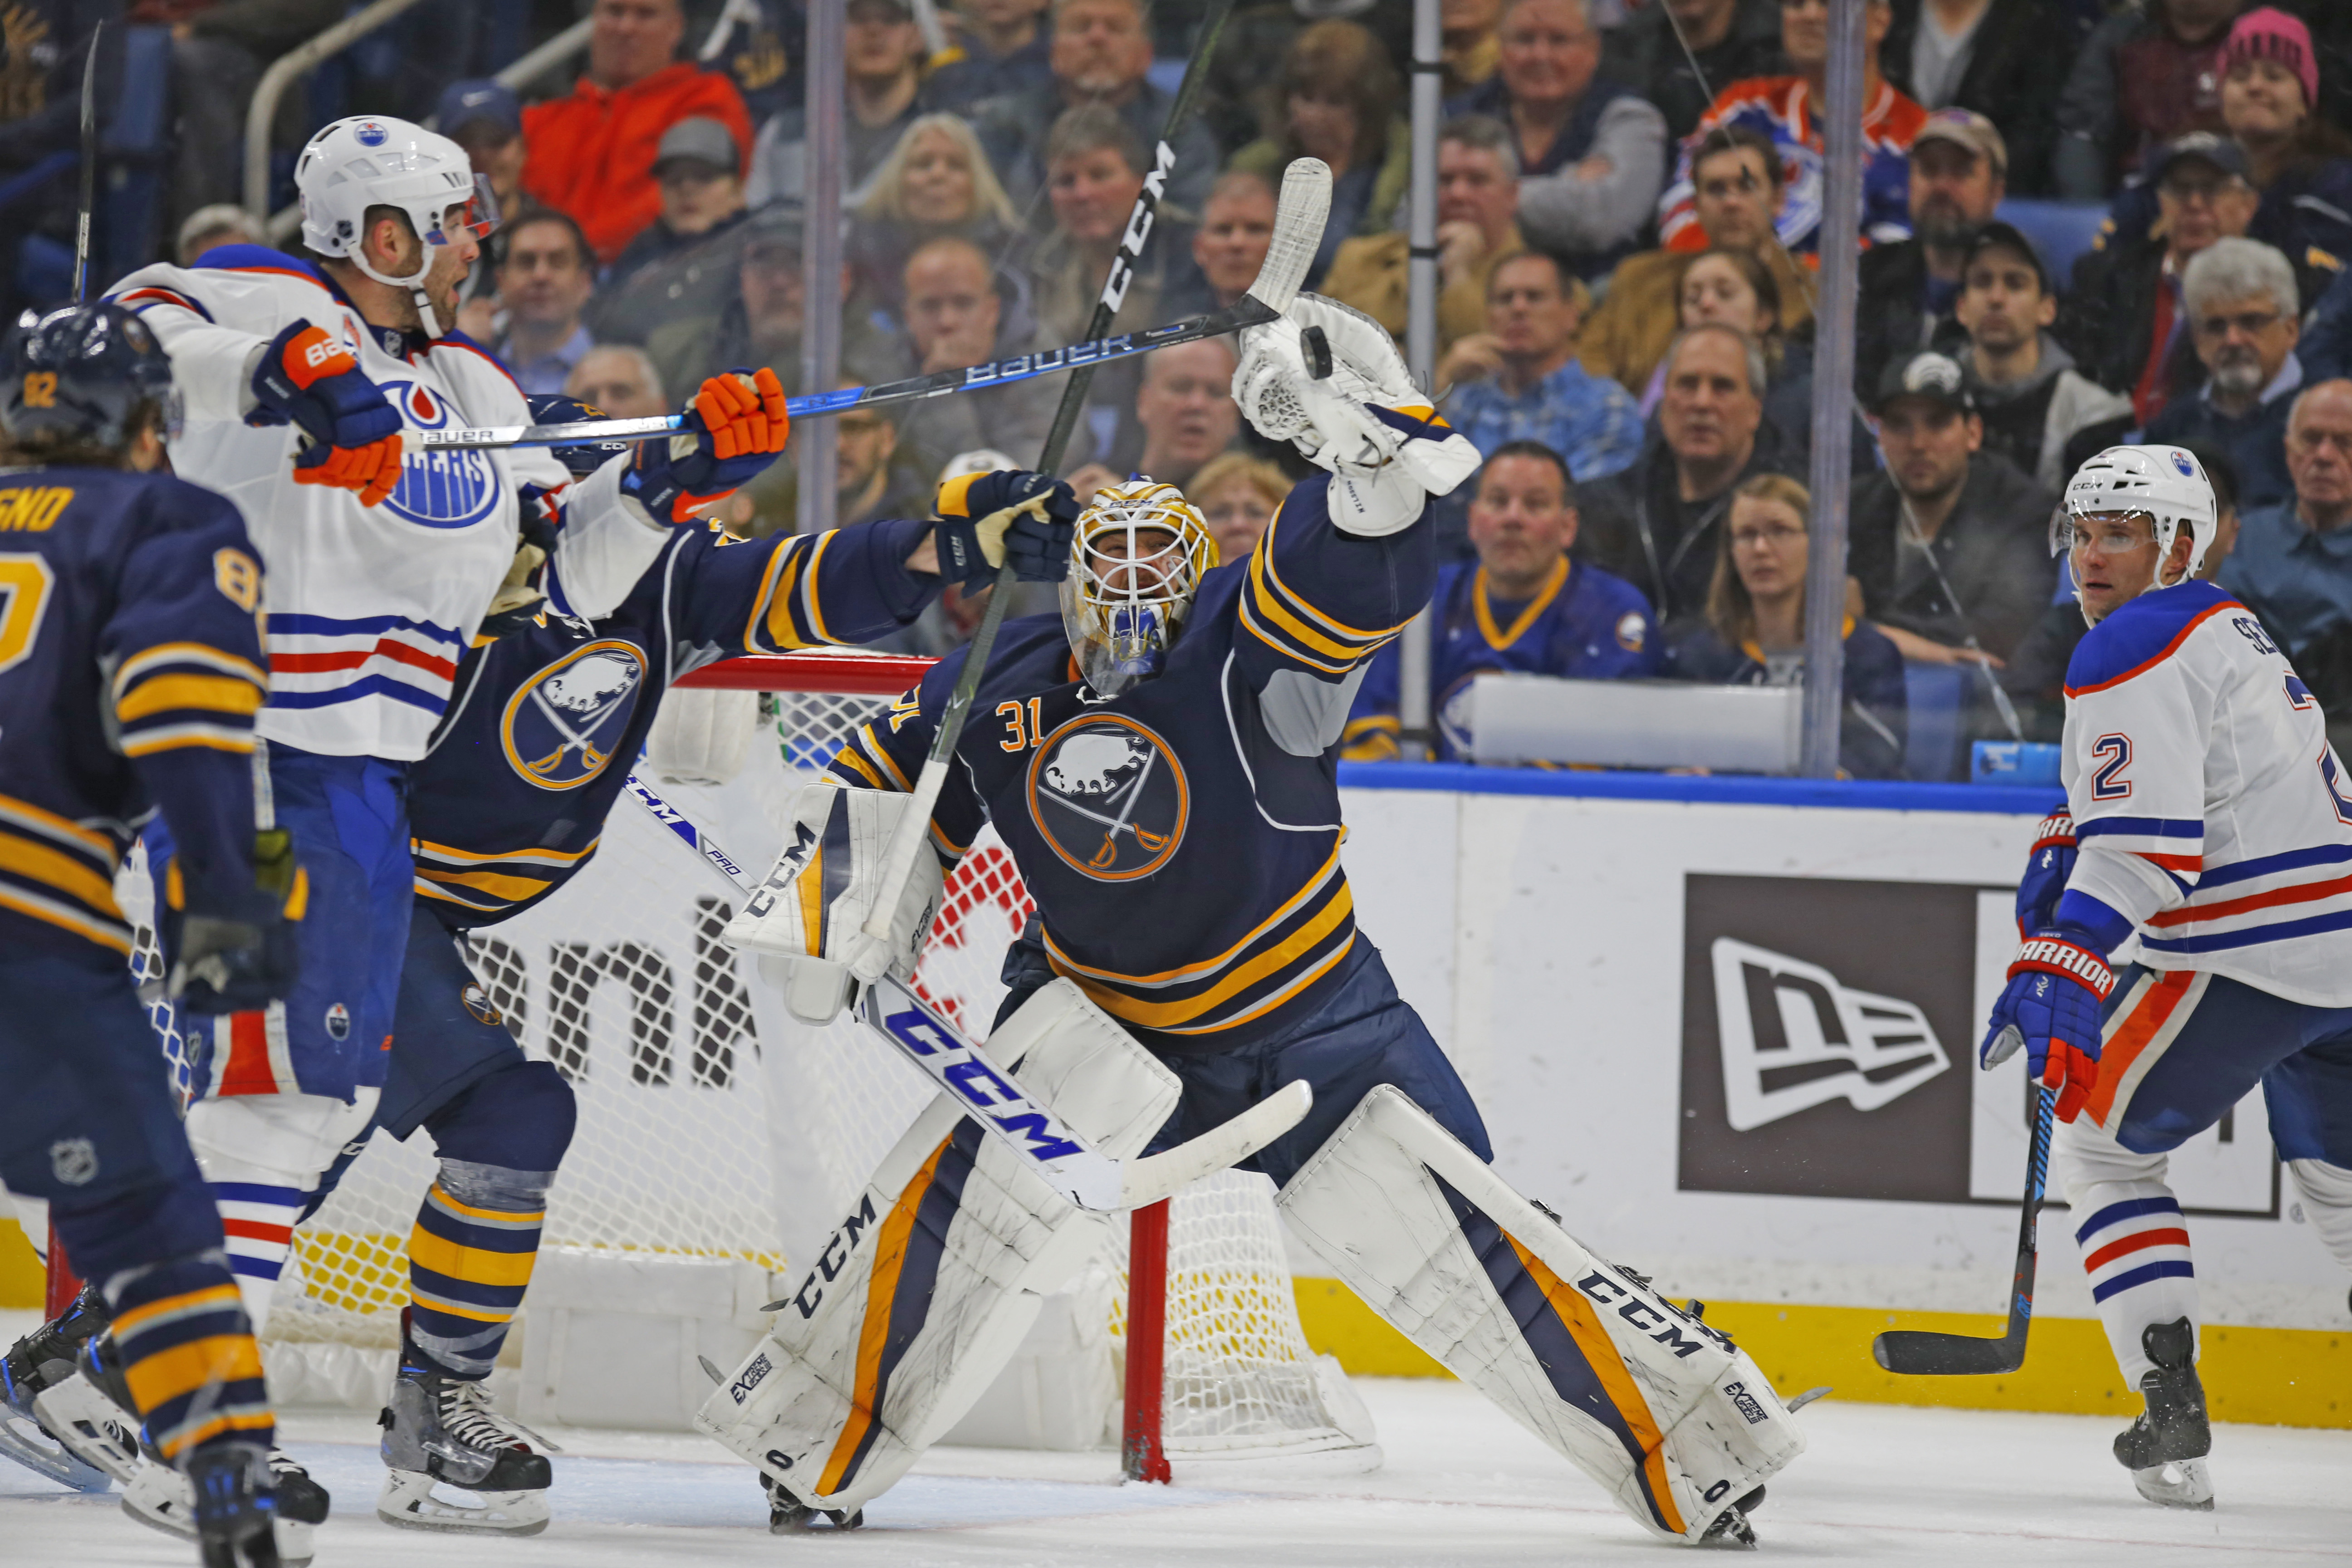 Buffalo Sabres goaltender Anders Nilsson makes a save against the Edmonton Oilers during third period action Tuesday (Harry Scull Jr./Buffalo News)